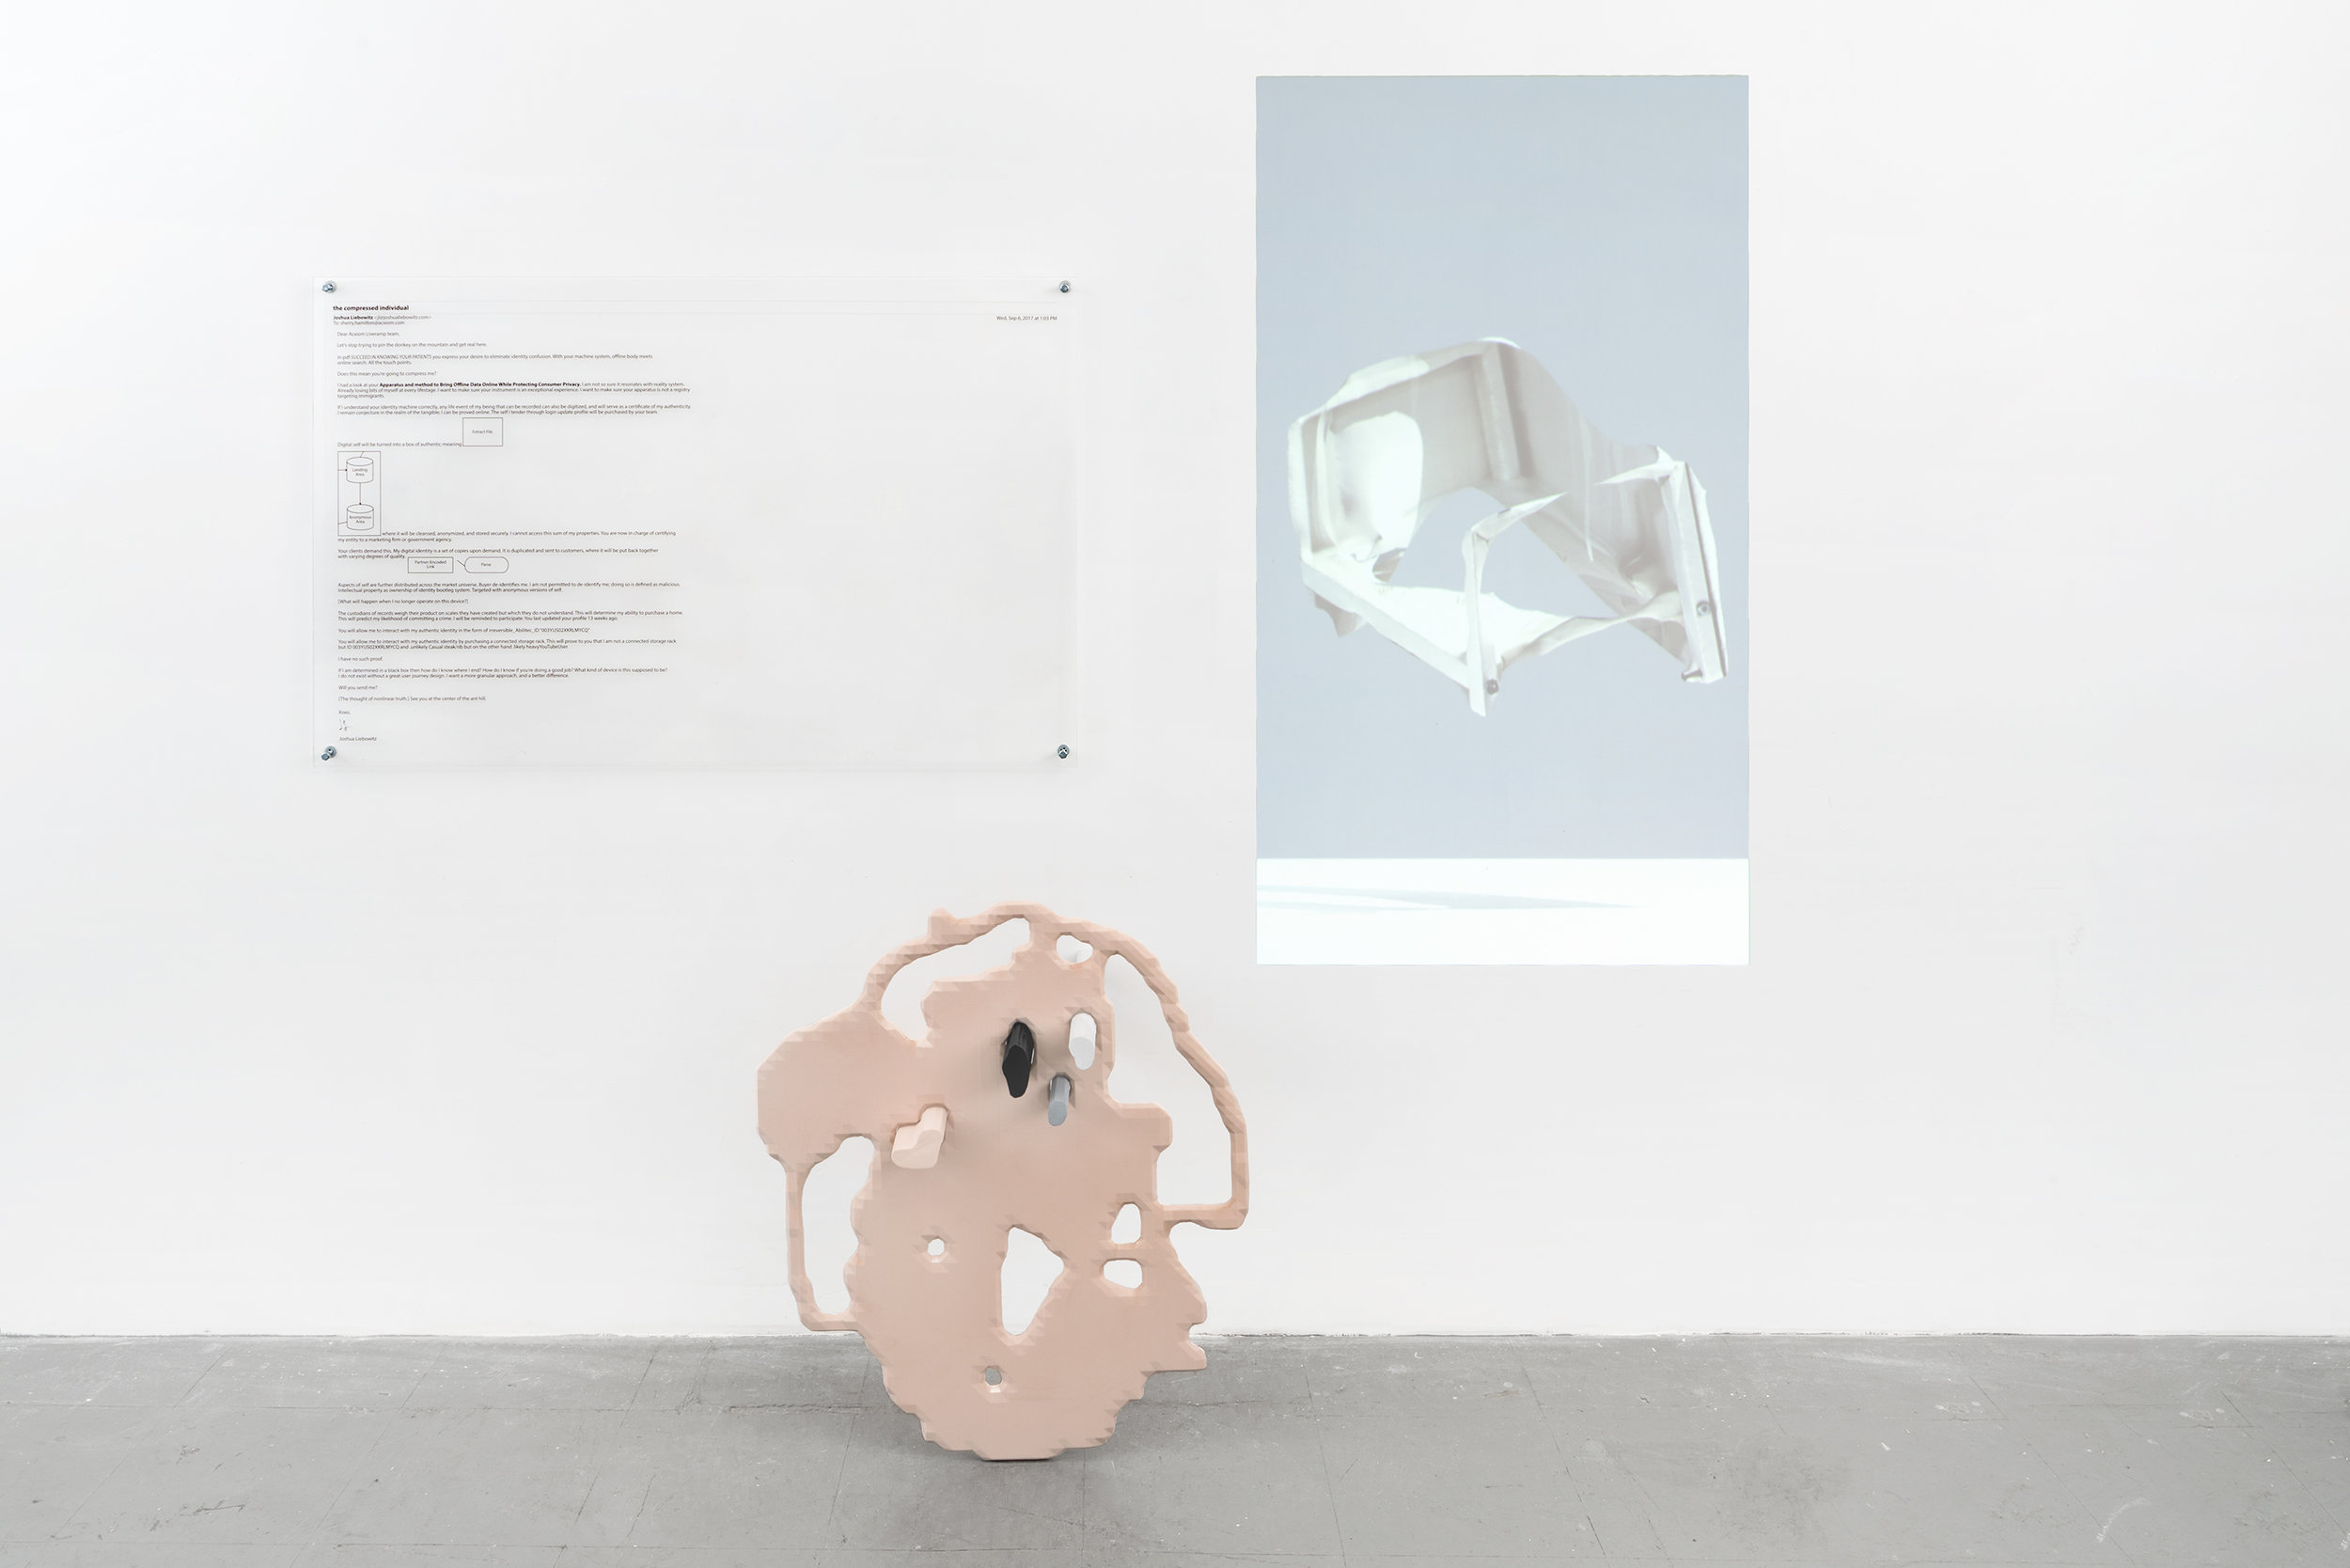 Transfer of Self Over a Network Connection  2017 CNC-routed HDU foam, projection, digital print on acrylic  74 x 76 x 16.25 inches